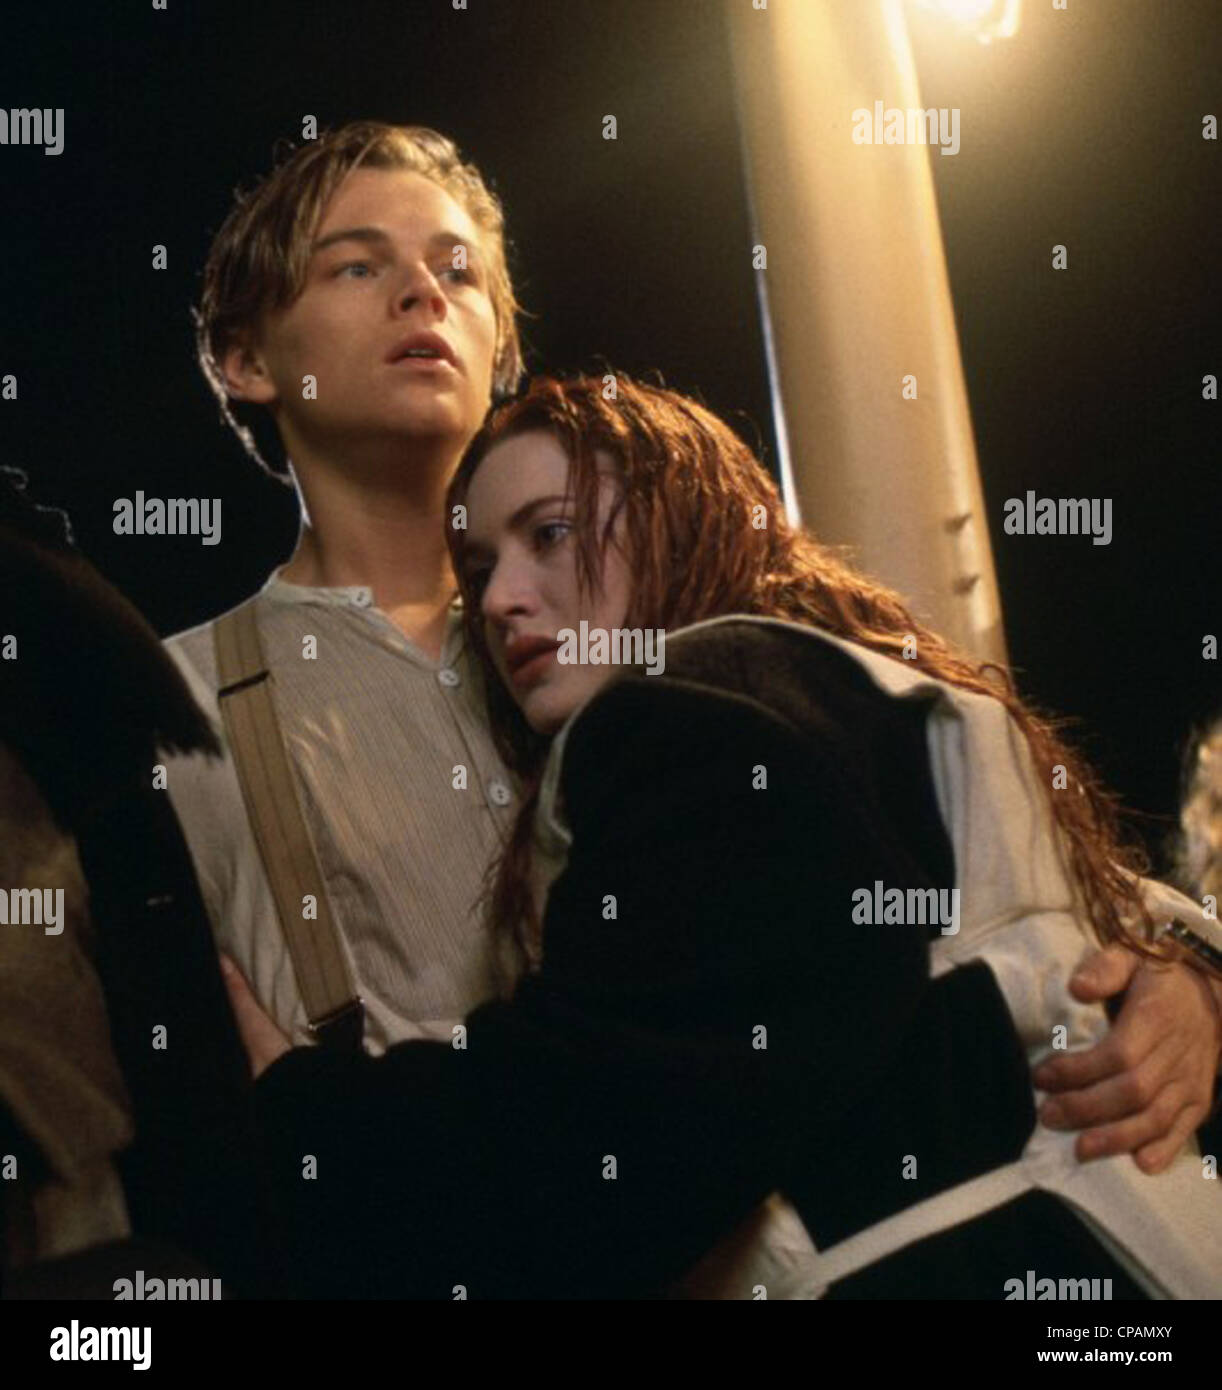 TITANIC (1997) LEONARDO DICAPRIO, KATE WINSLET, JAMES CAMERON (DIR) 044 MOVIESTORE SAMMLUNG LTD Stockbild